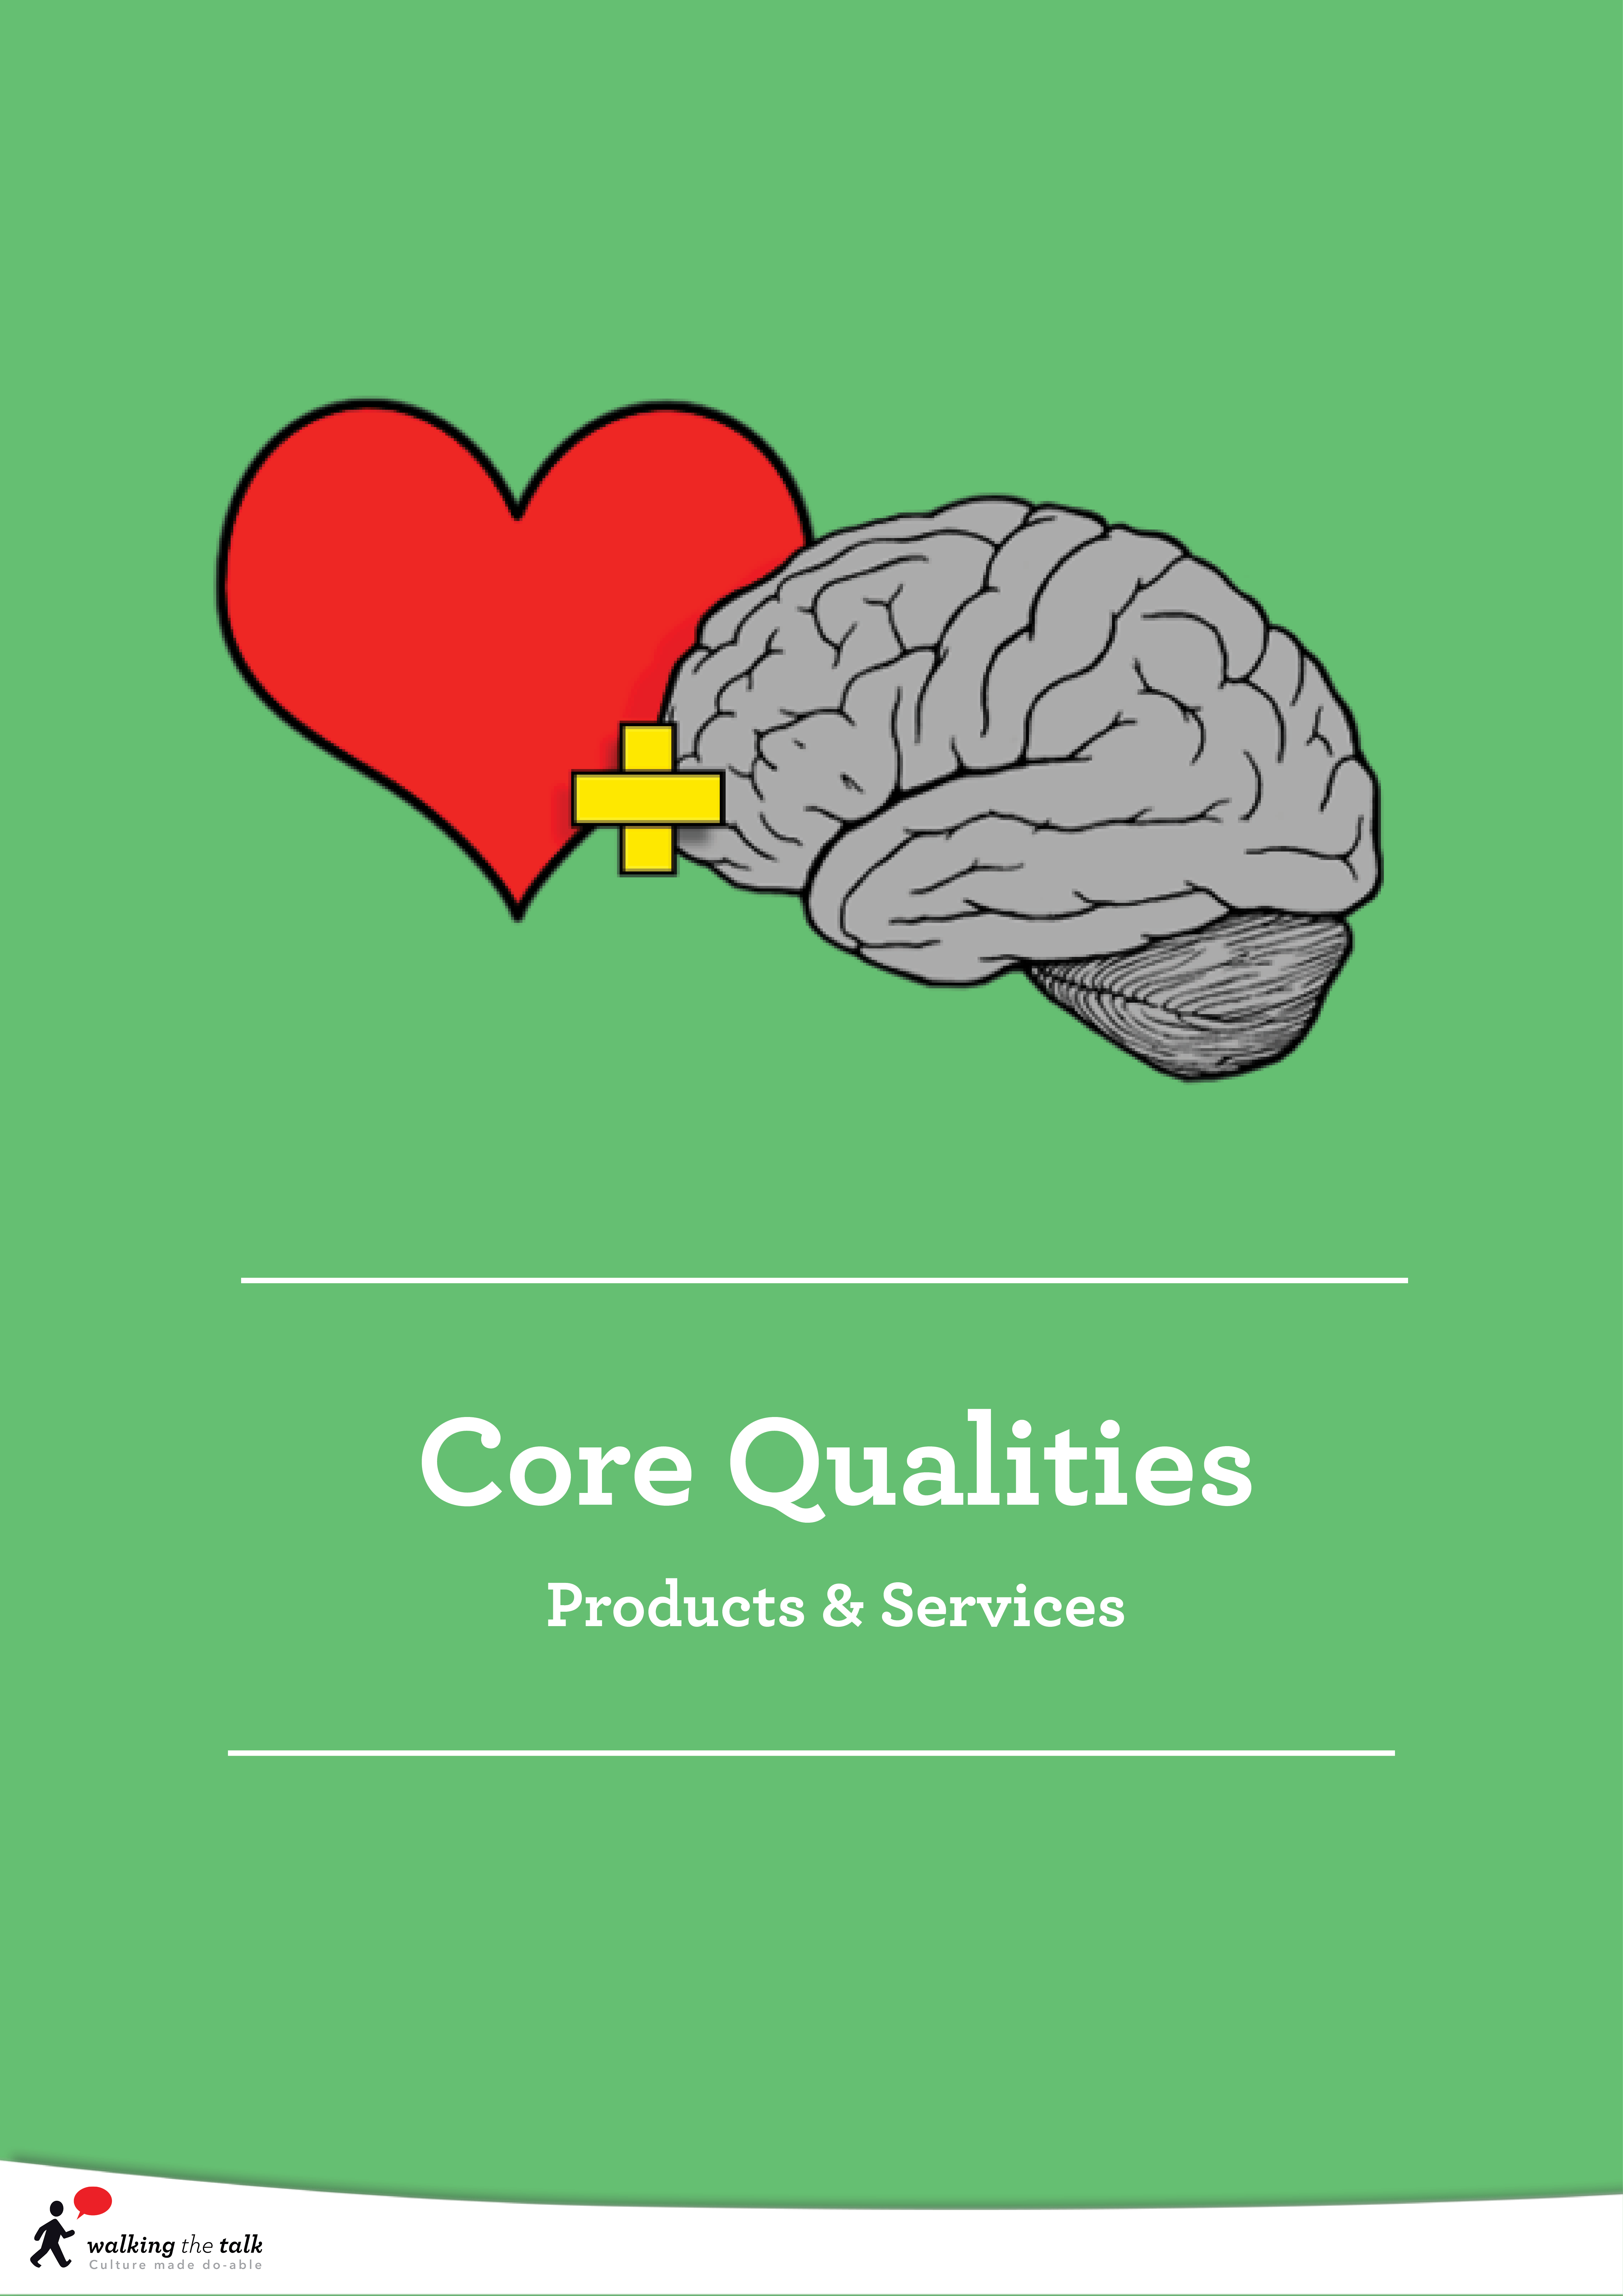 4 Core Qualities